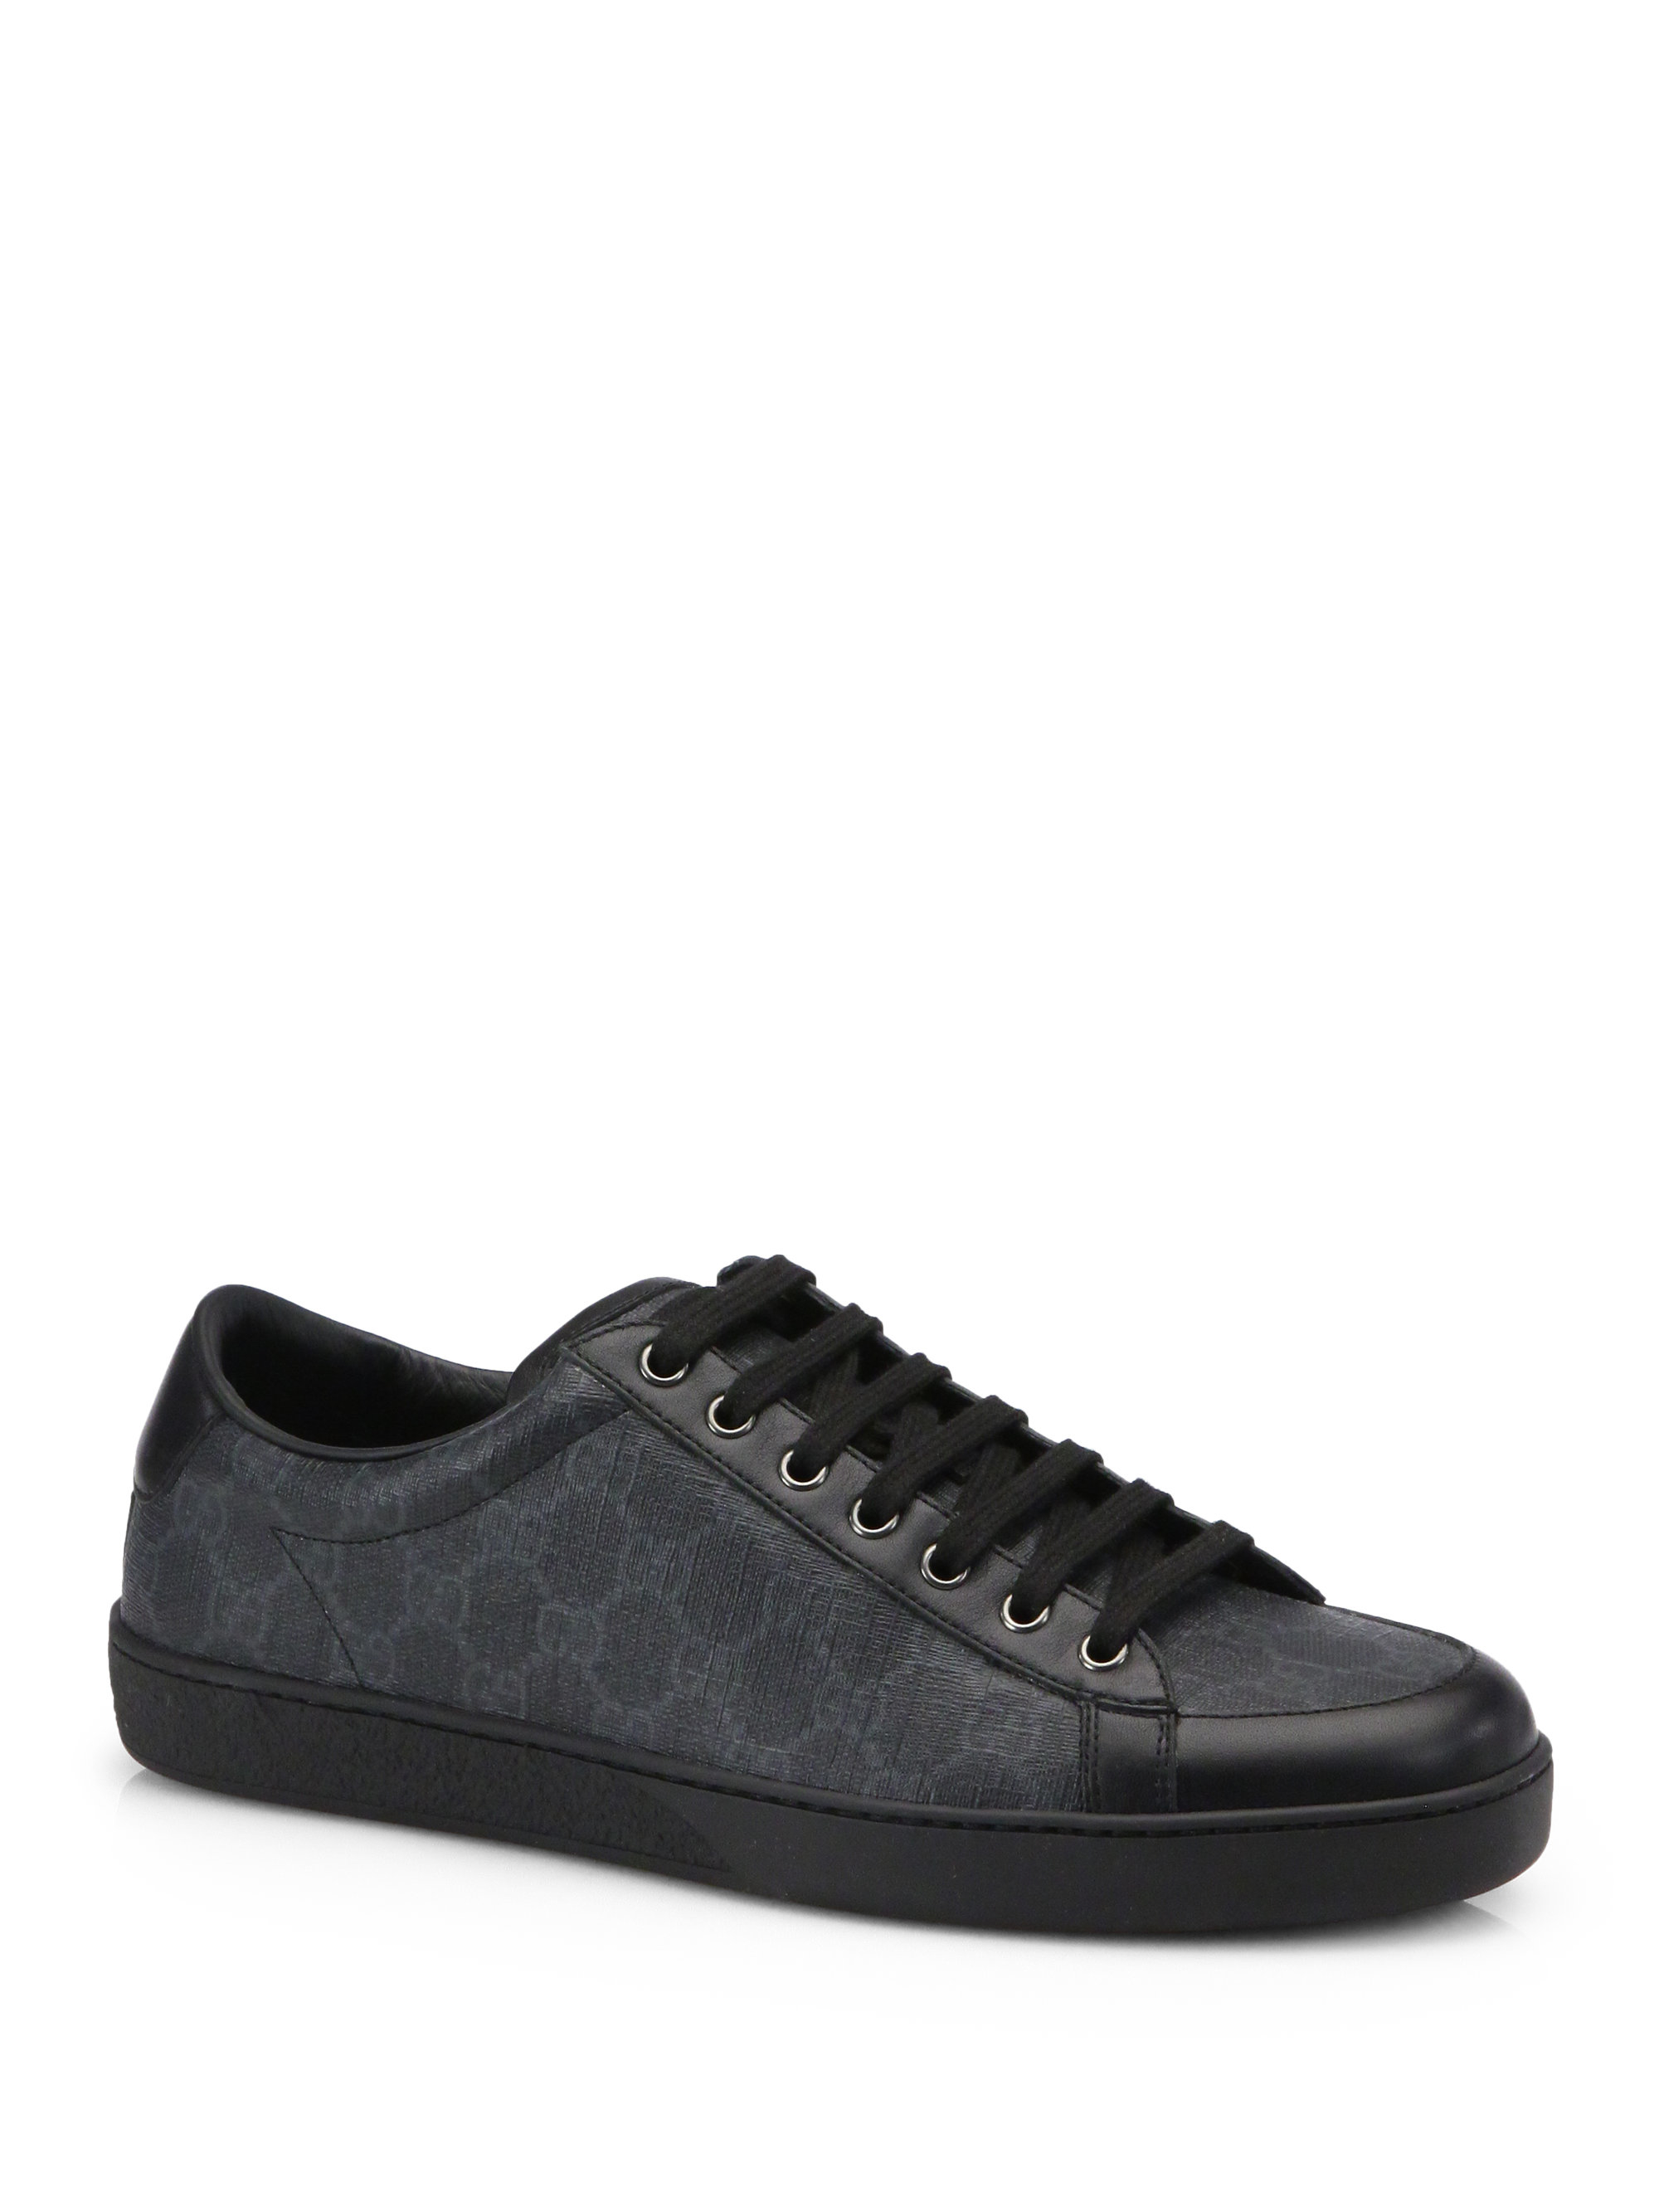 Lyst - Gucci Brooklyn Gg Lace-up Sneakers in Black for Men